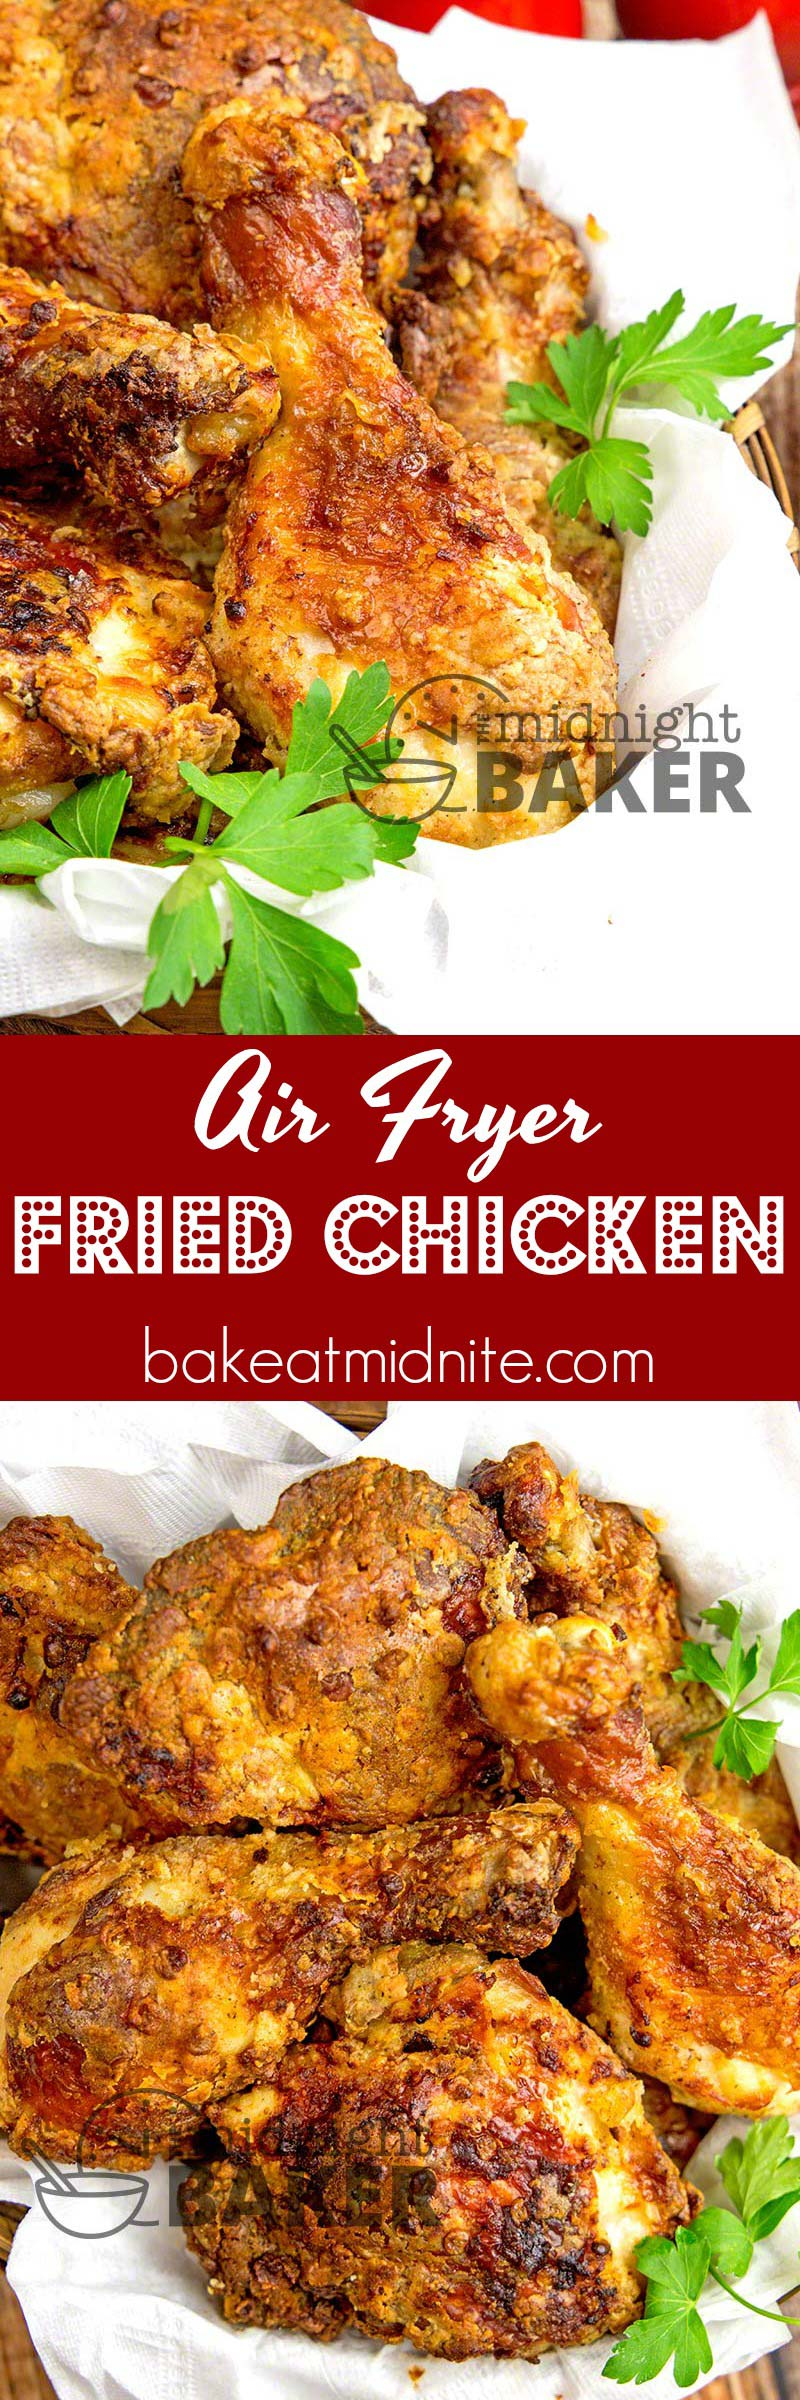 The crispiest fried chicken you'll ever eat. Hardly uses any fat using an air fryer.